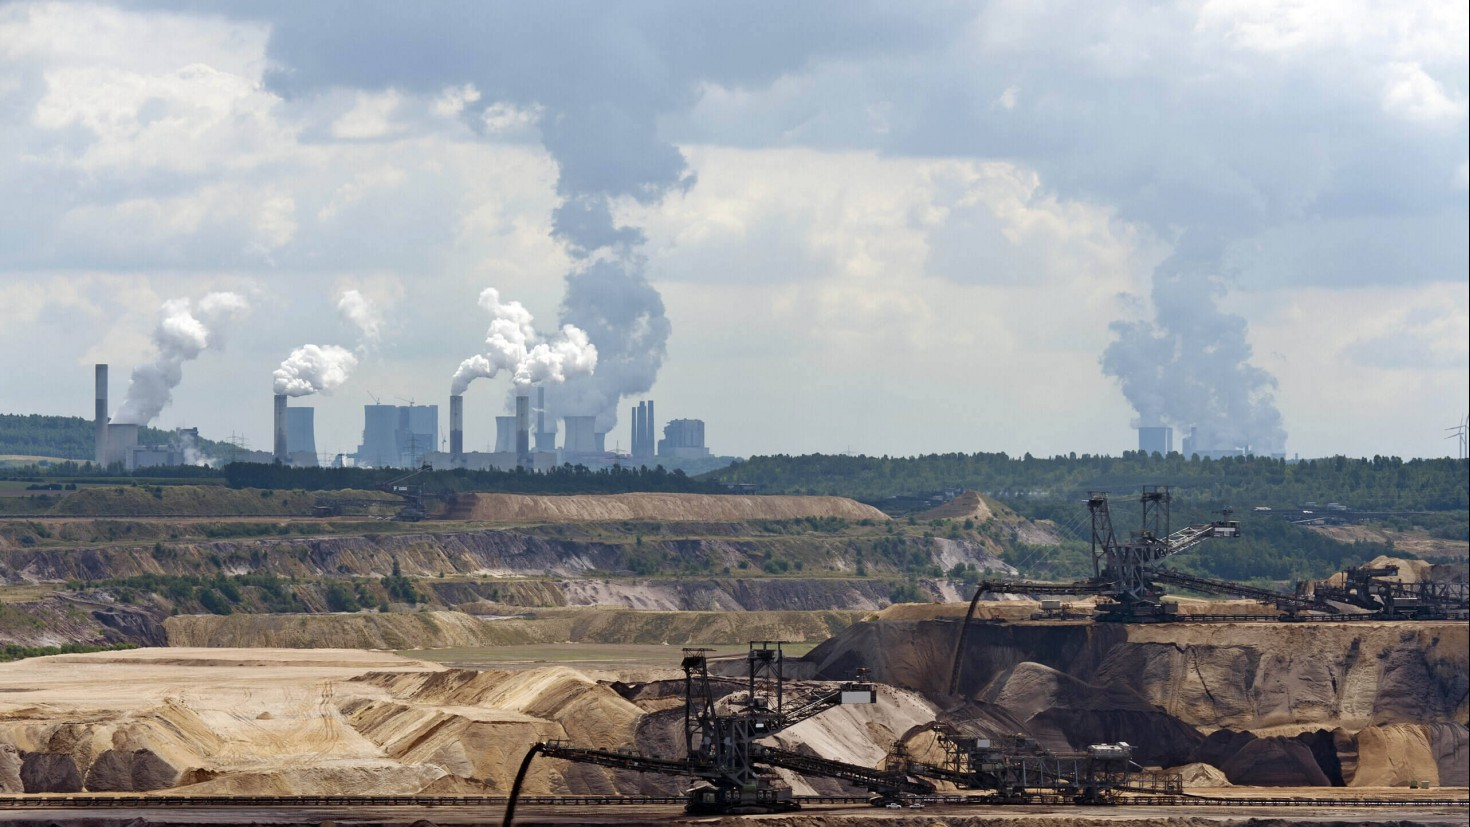 Power production is a large source of CO2 emissions in many countries. In this picture, you see a lignite mine in north-Rhine Westphalia in Germany, with lignite-fired power plants Neurath and Niederaussem in the background. Photo credit: Getty Images.